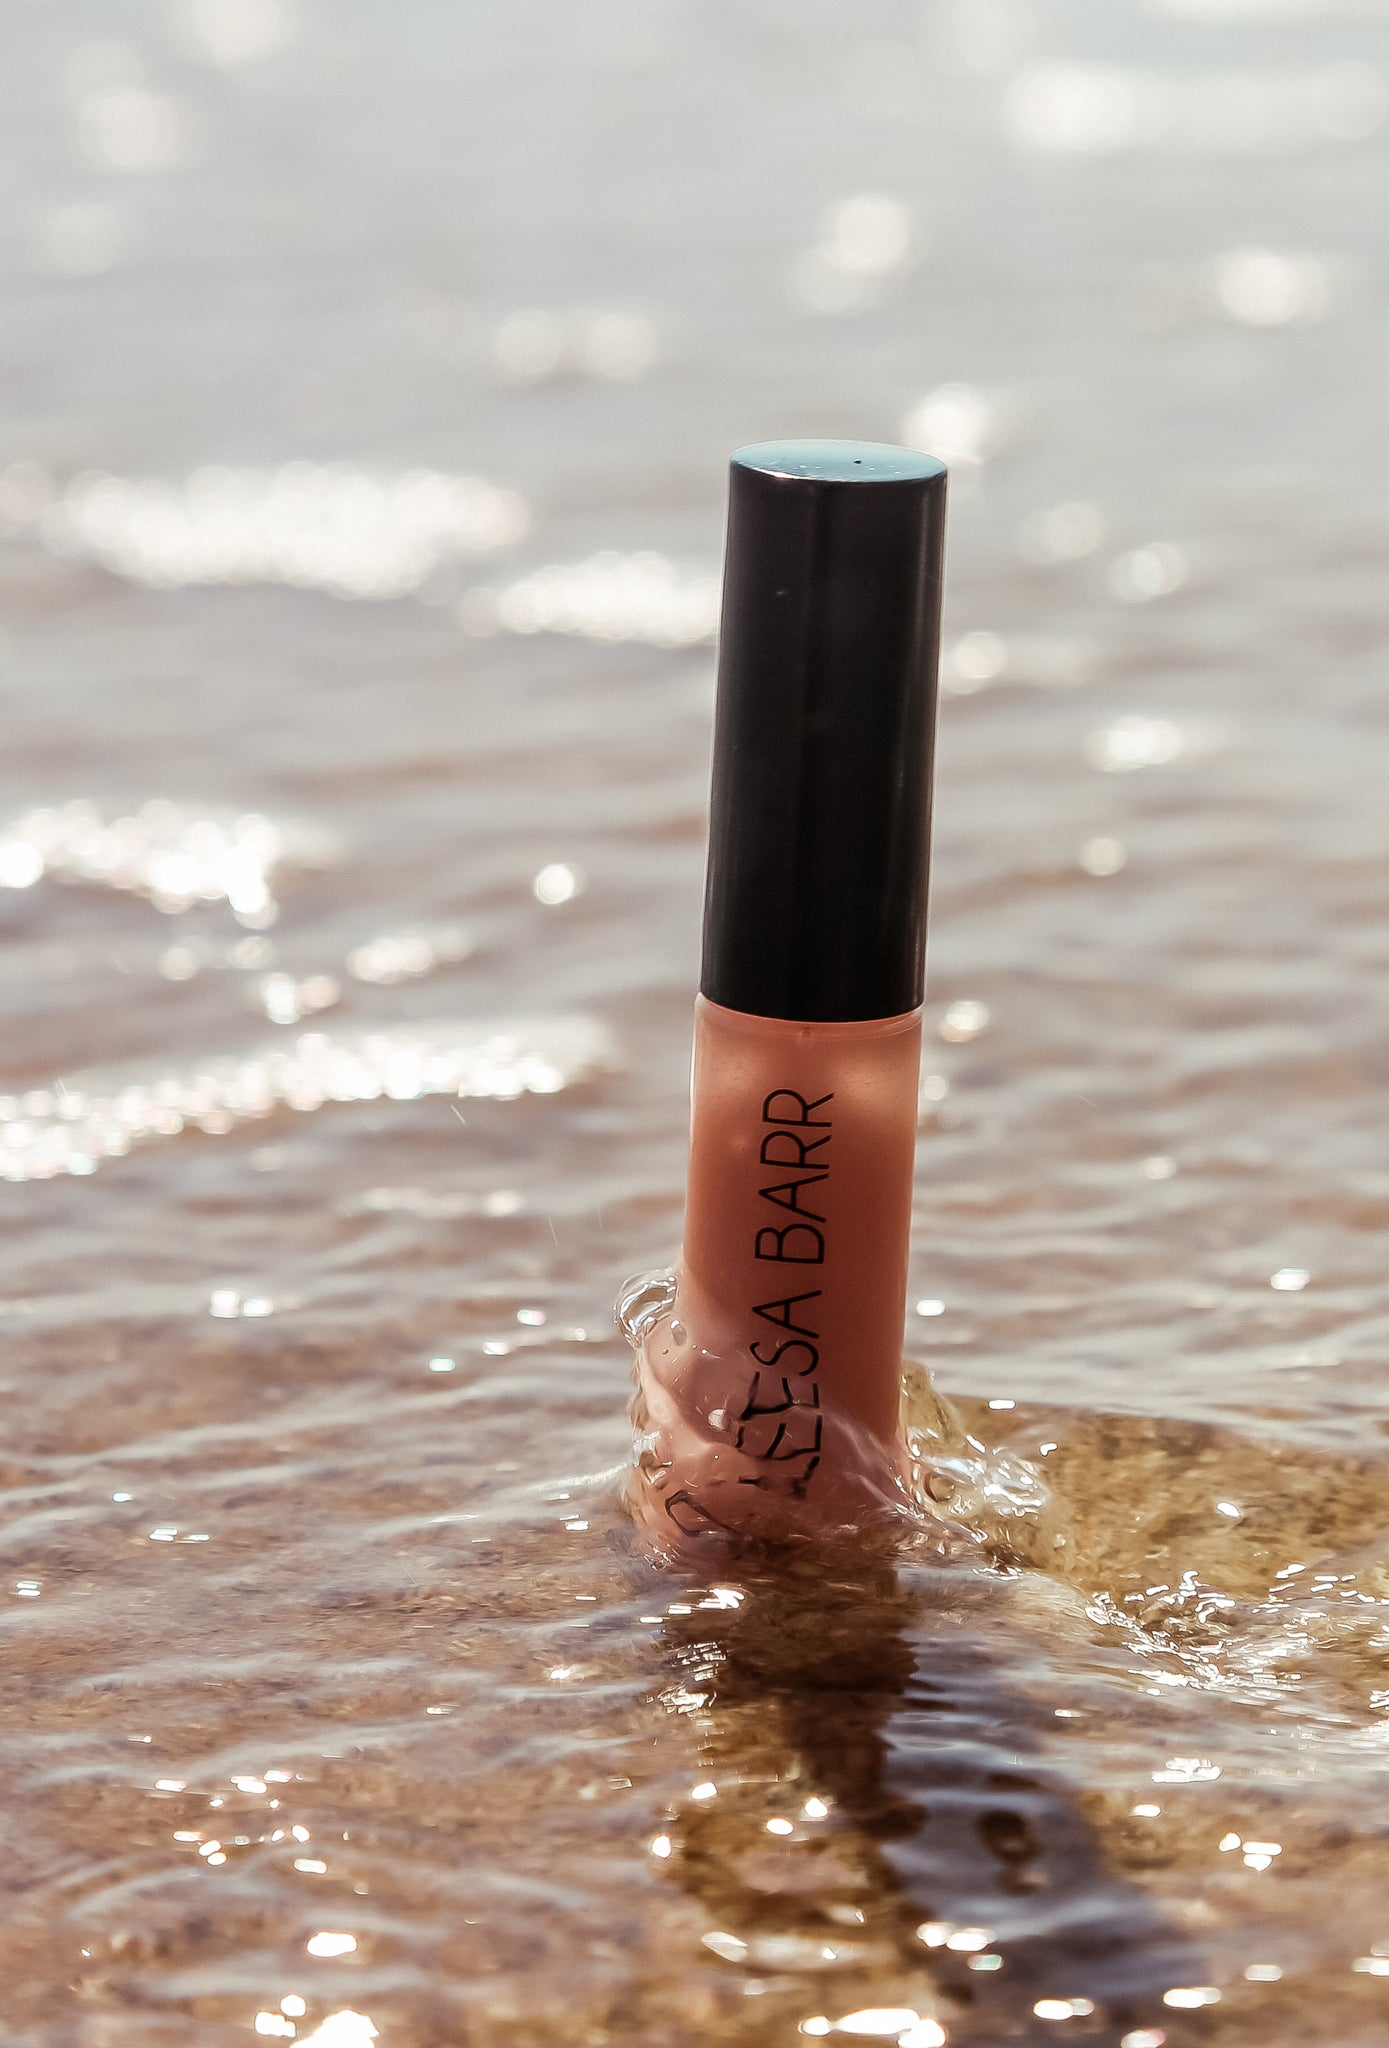 Image of Beach Bum - lip gloss